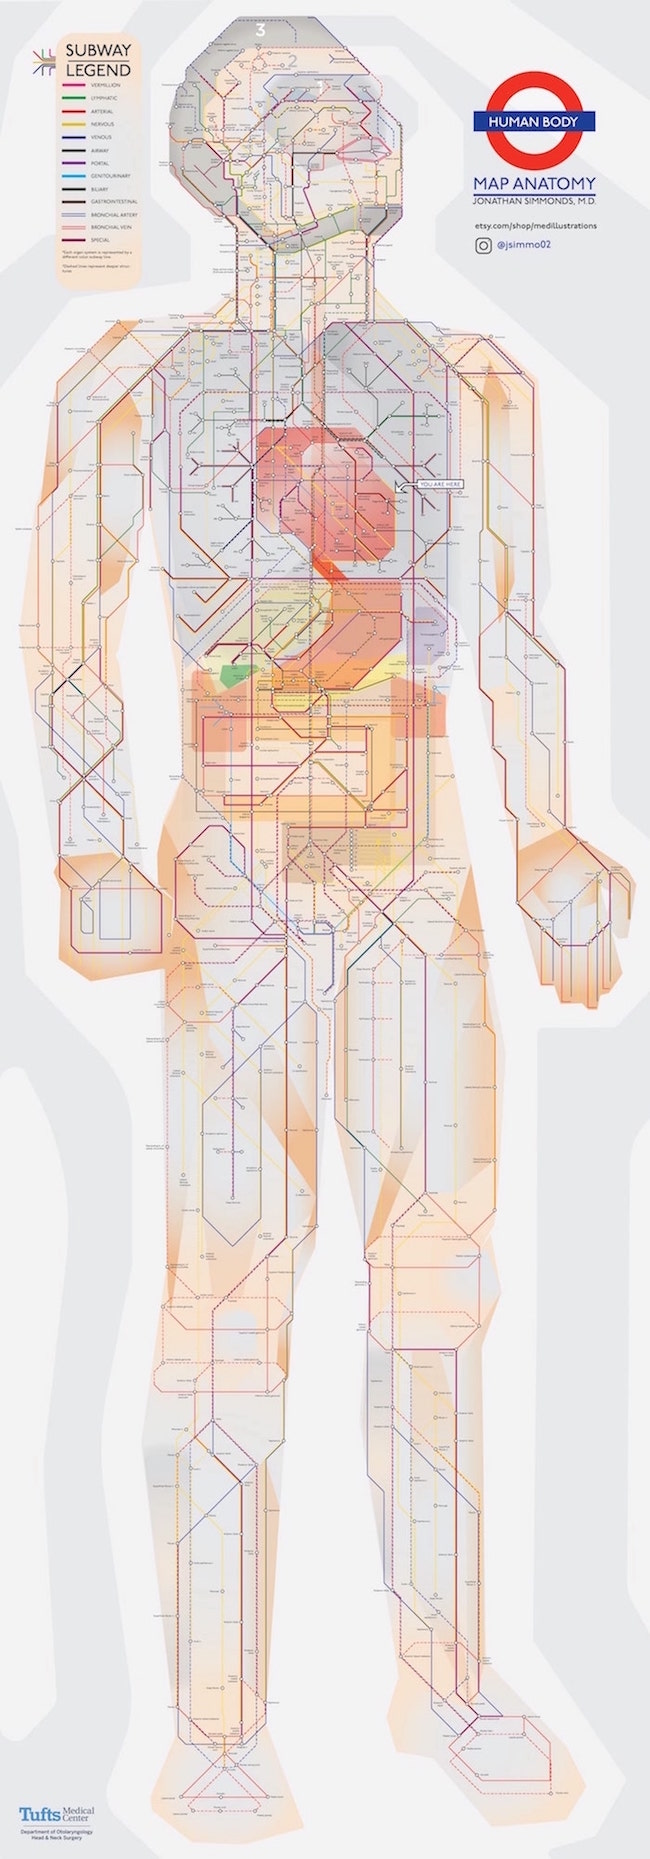 A Doctor Created Human Anatomy Diagram In The Style Of Subway Wiring Schematic Click Here For High Res Image Map